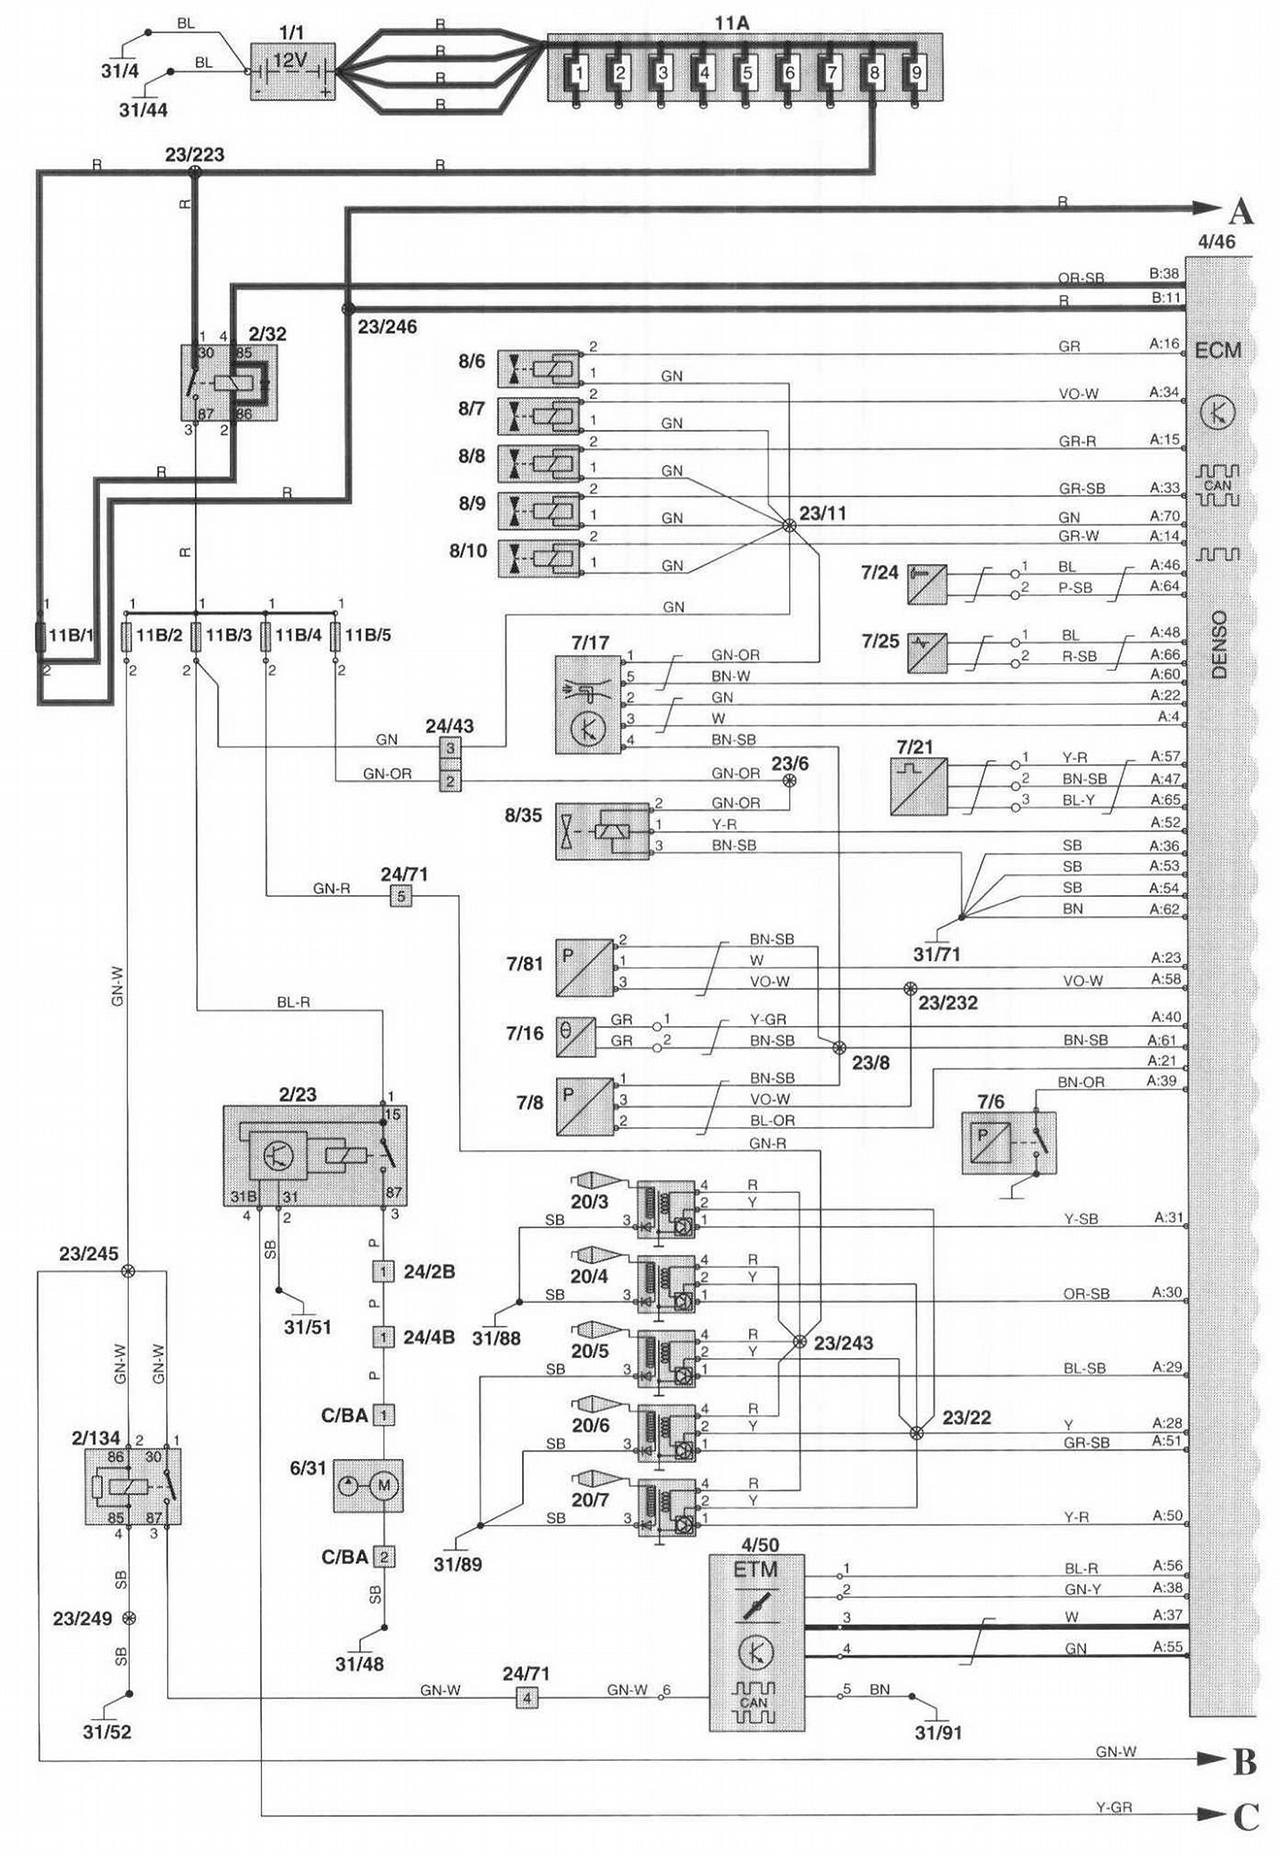 2001 Volvo V70 Wiring Diagram - 6.aqz.capecoral-bootsvermietung.de on volvo v70 rear suspension, volvo v70 starter, volvo v70 power, volvo v70 vacuum diagram, volvo v70 schematics, volvo v70 distributor, volvo amazon wiring diagram, volvo ignition wiring diagram, volvo t5 engine diagram, volvo s70 wiring-diagram, volvo v70 firing order, volvo v70 oil pump, volvo v70 repair, volvo 240 wiring diagram, volvo v70 battery, volvo v70 cooling, volvo v70 fuse box diagram, volvo v70 timing marks, volvo v70 thermostat, volvo v70 tailgate wiring harness,